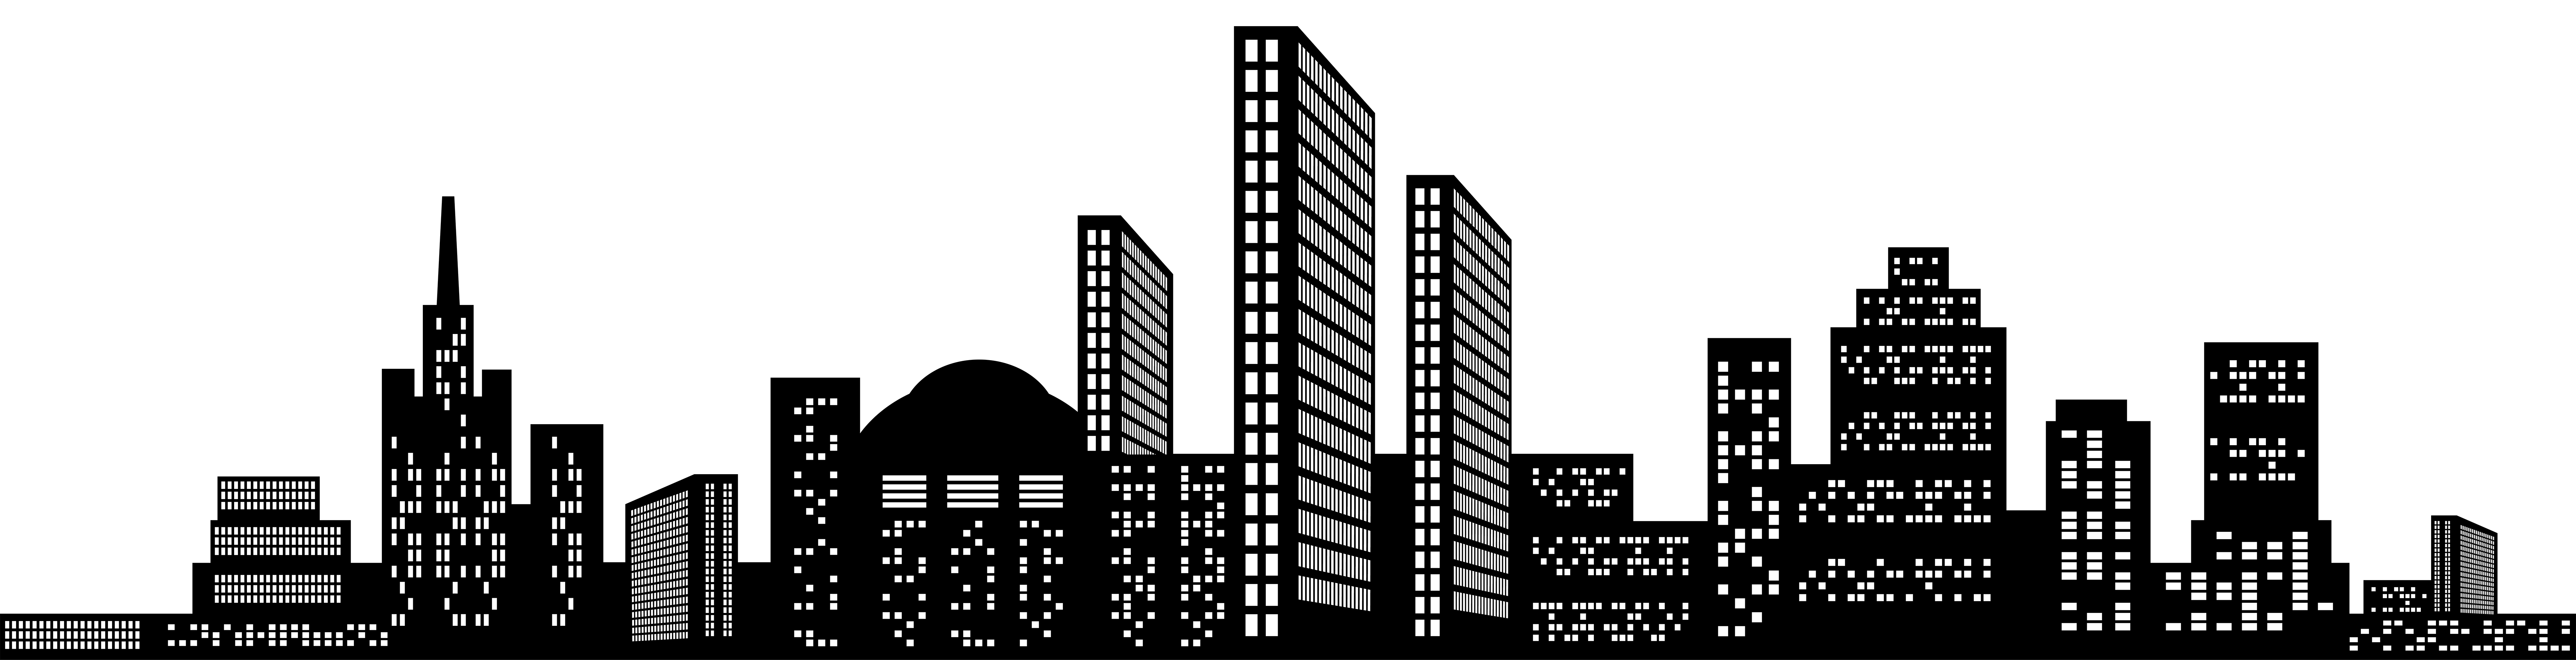 Silhouette Building Png 4 PNG Image